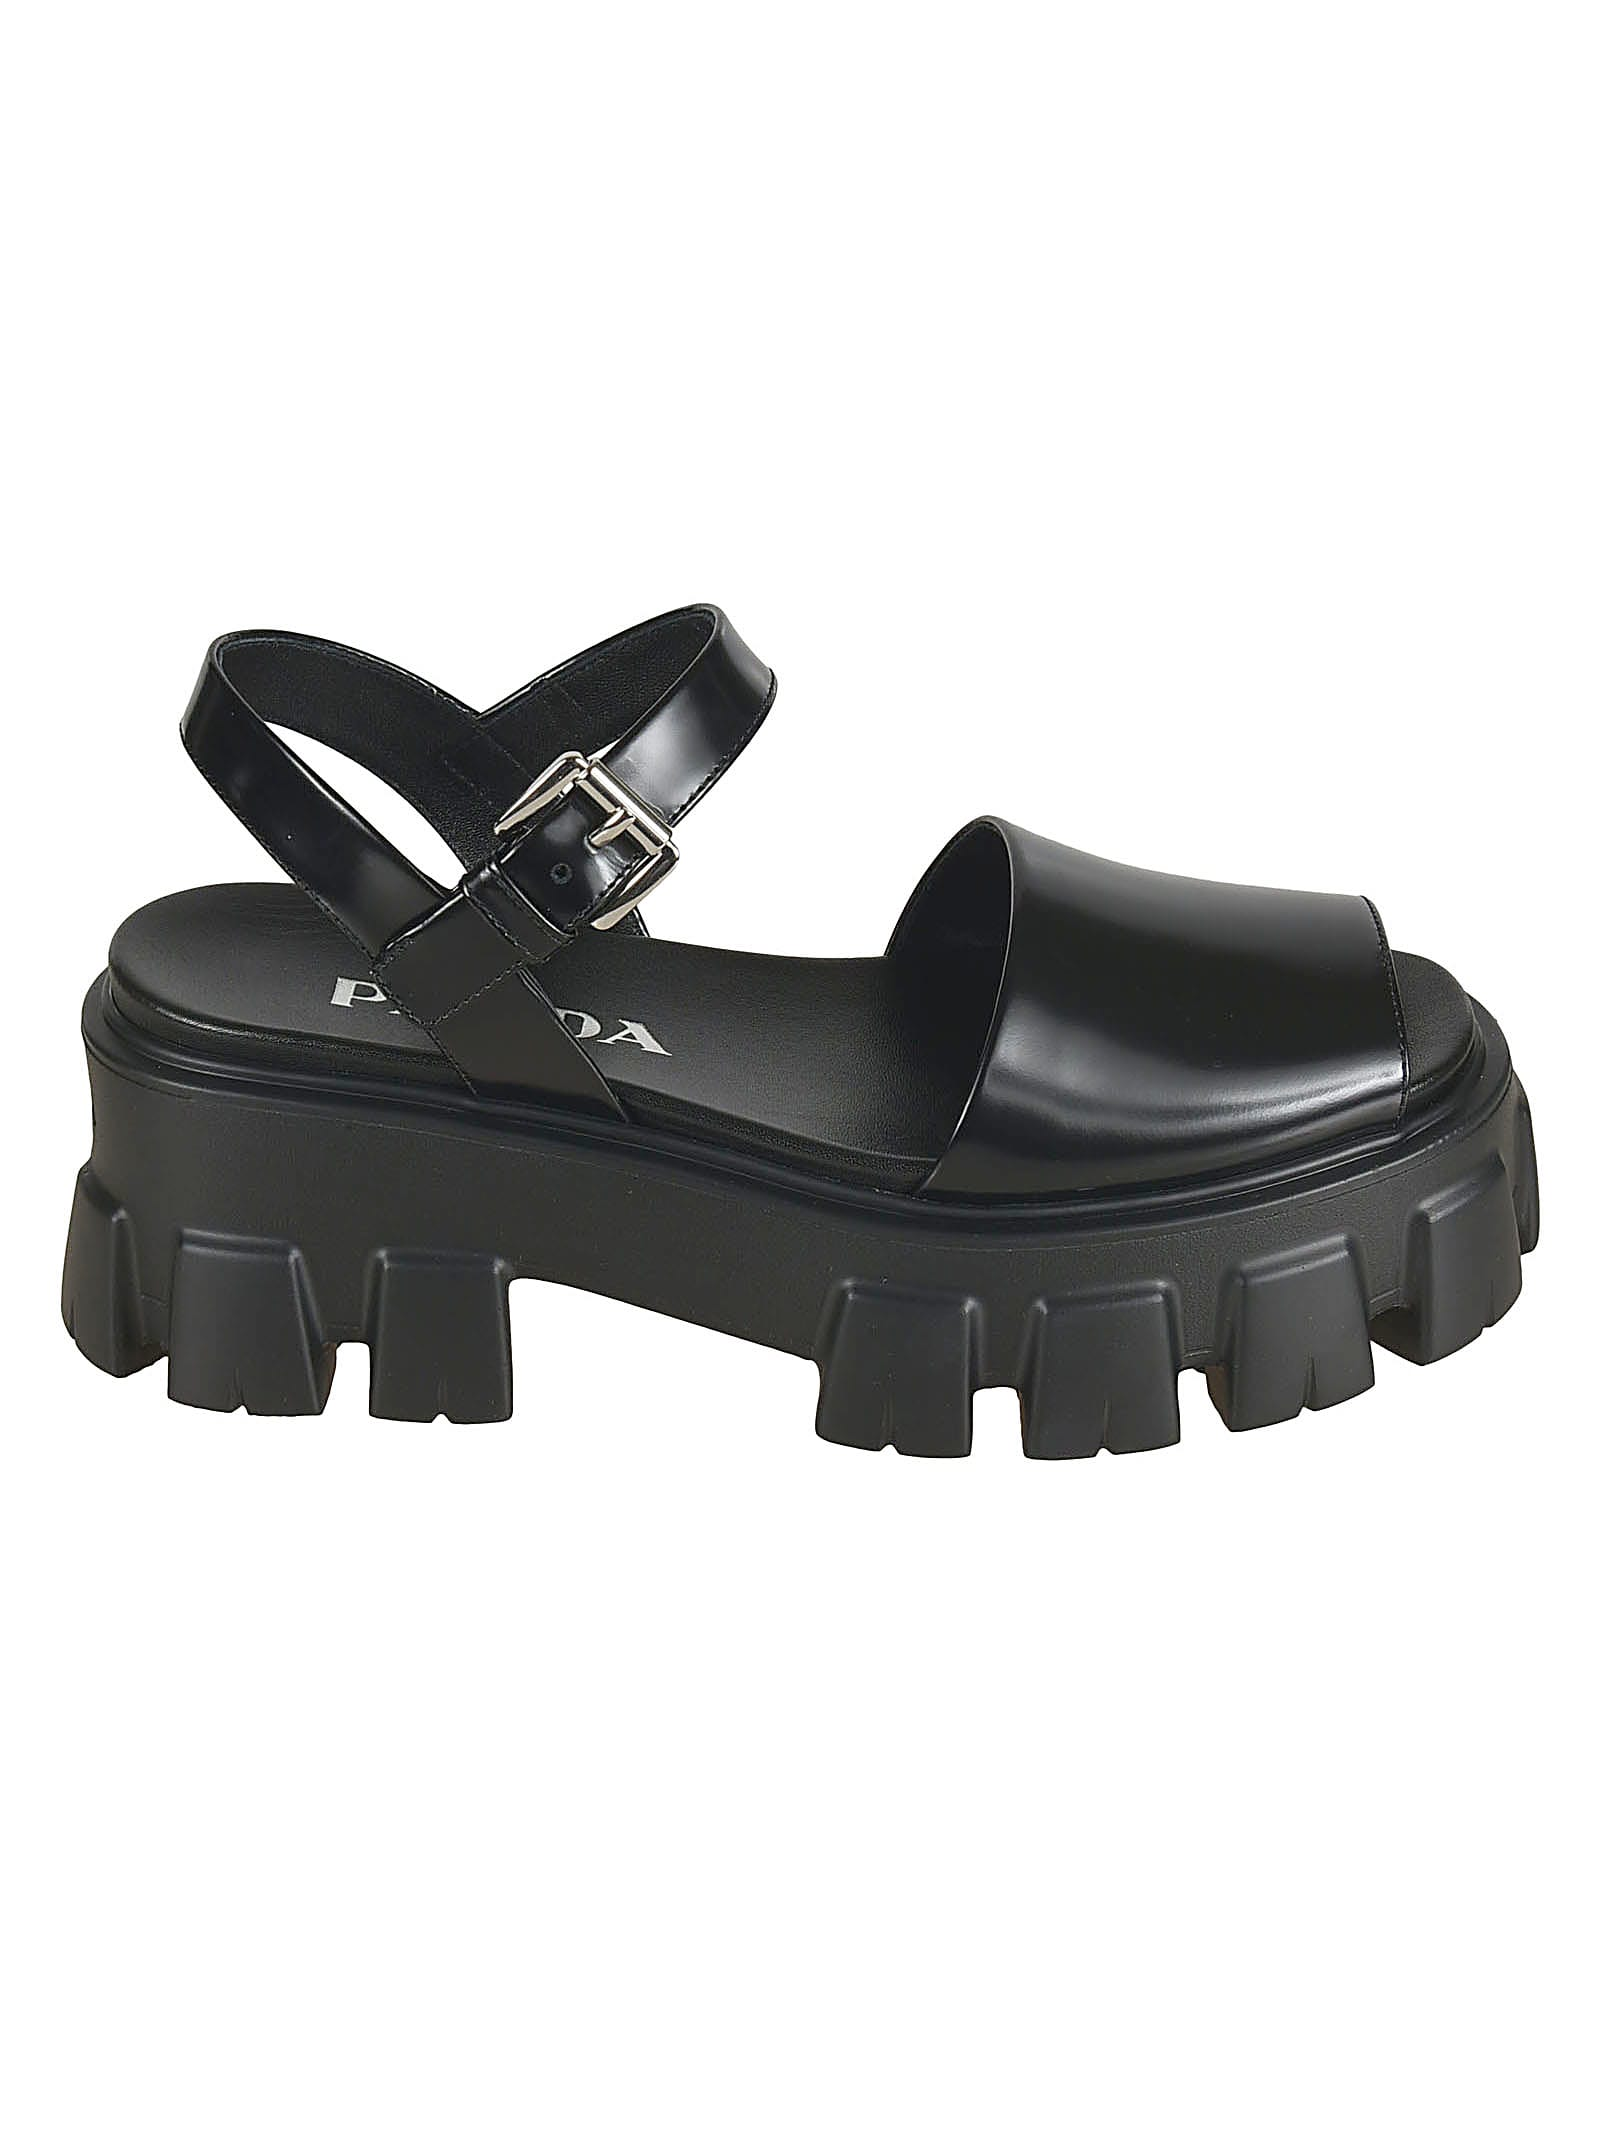 Buy Prada Side Buckled Wedge Sandals online, shop Prada shoes with free shipping